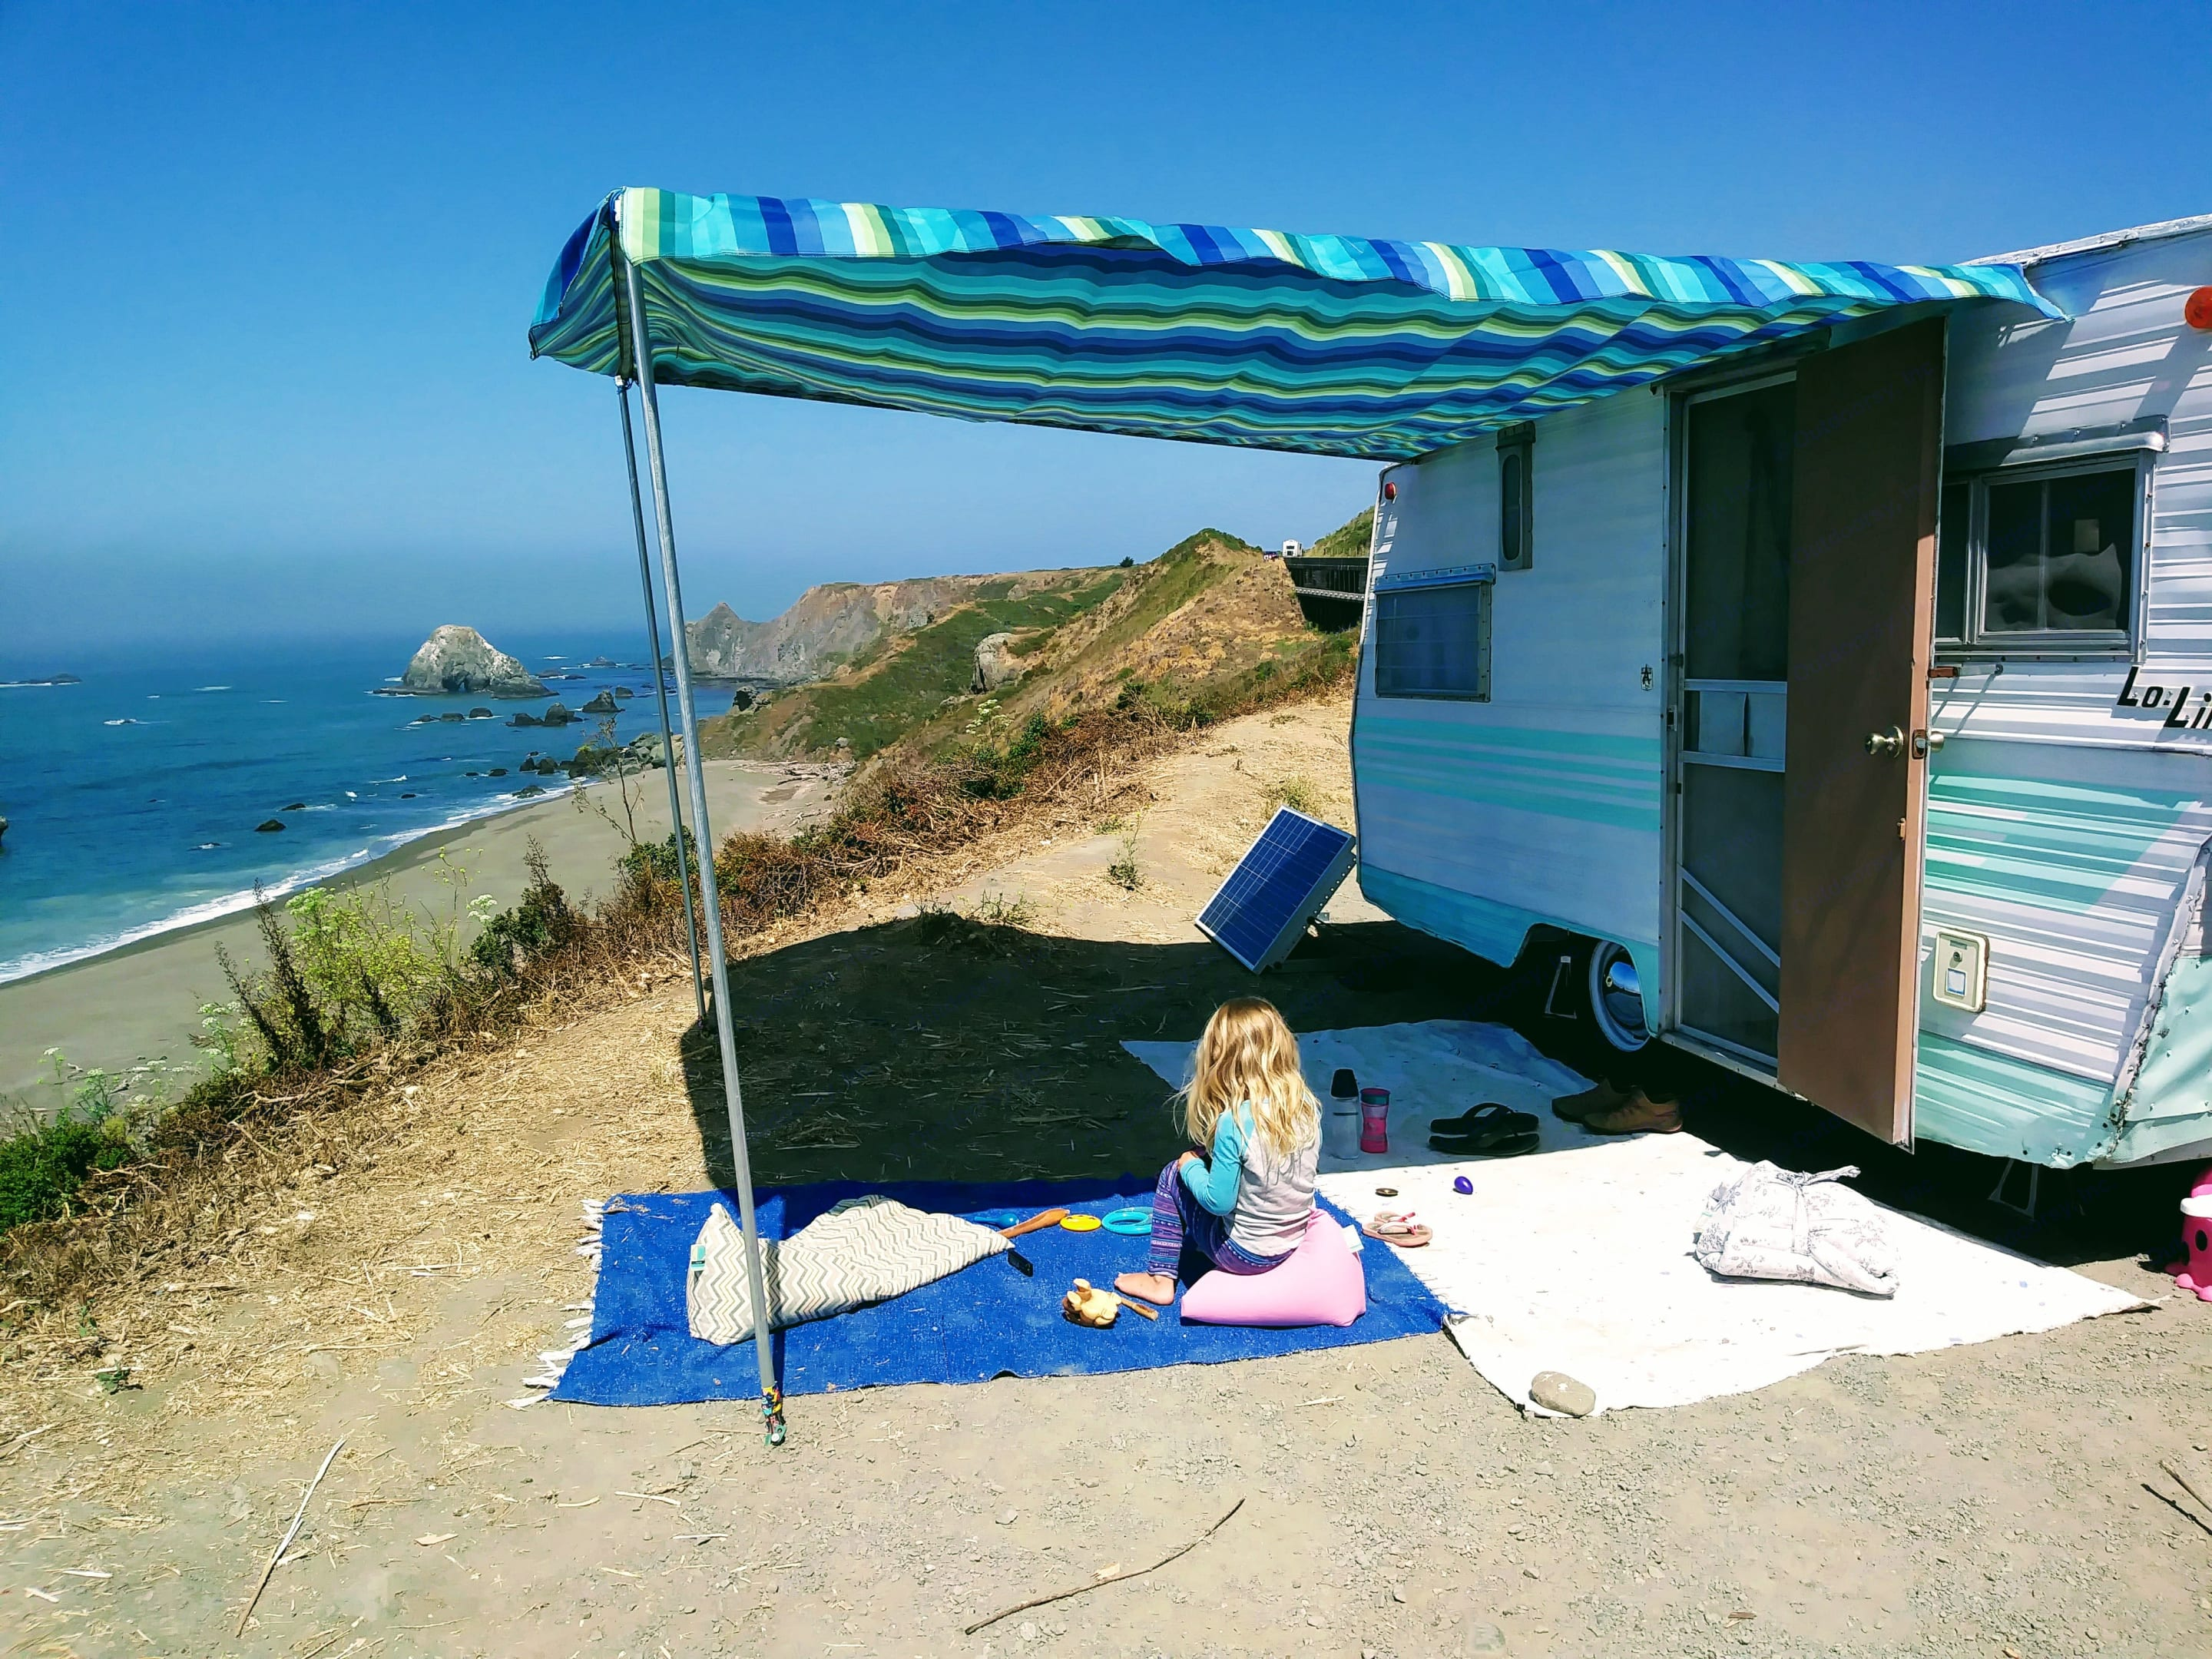 Large, homemade awning, perfect for a shady spot to chill and take it all in!. Aristocrat Lo-Liner 1968